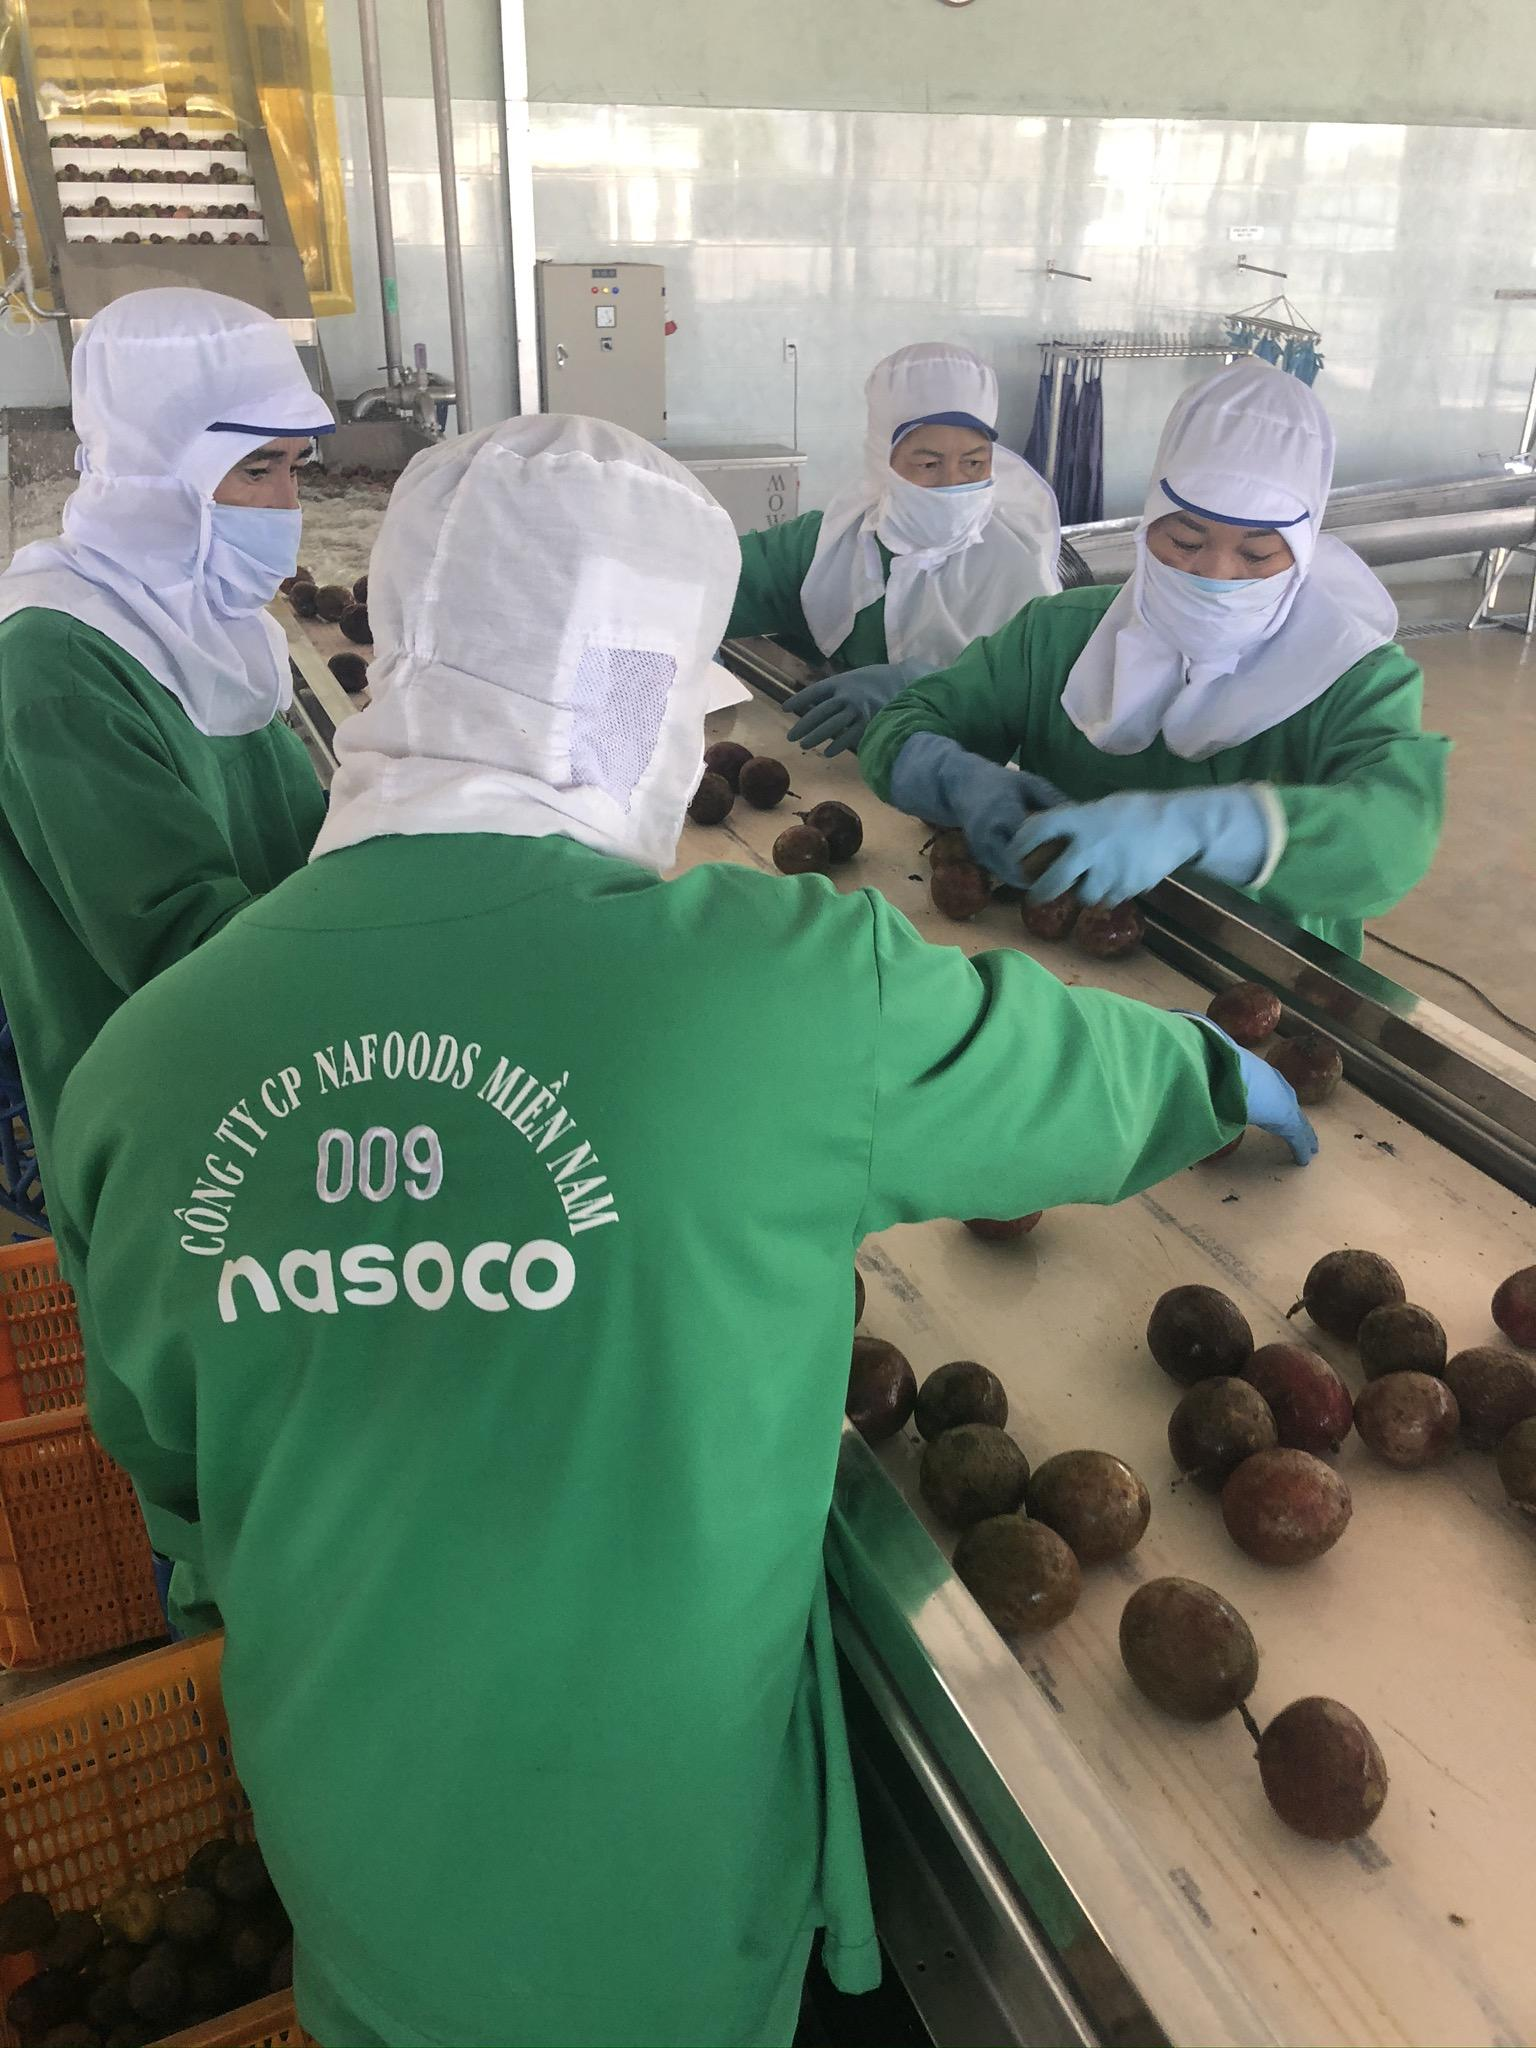 Employees handling fruit in the factory